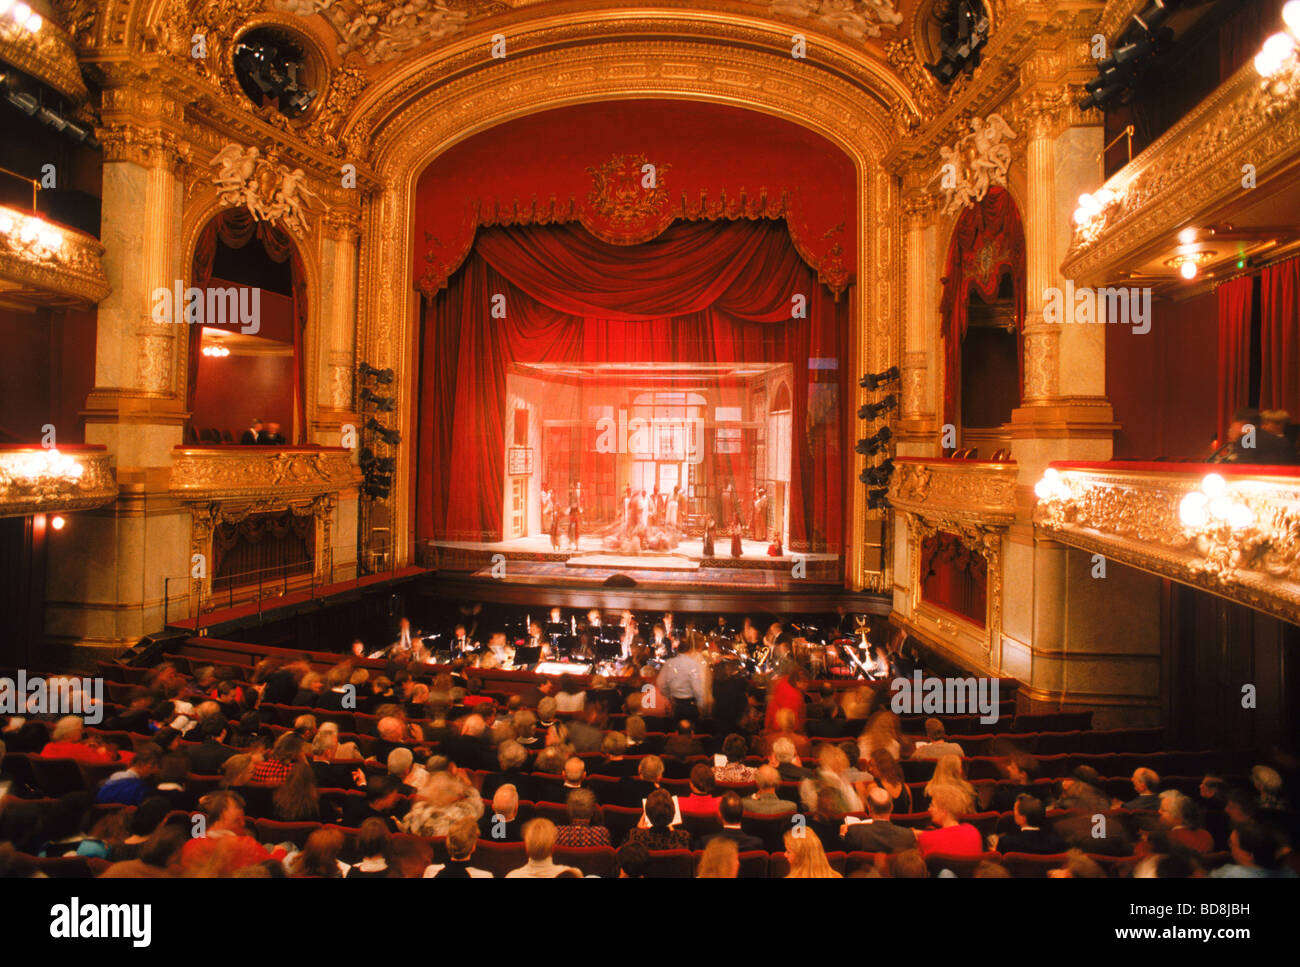 Audience and performing artists at Stockholm Royal Opera House - Stock Image